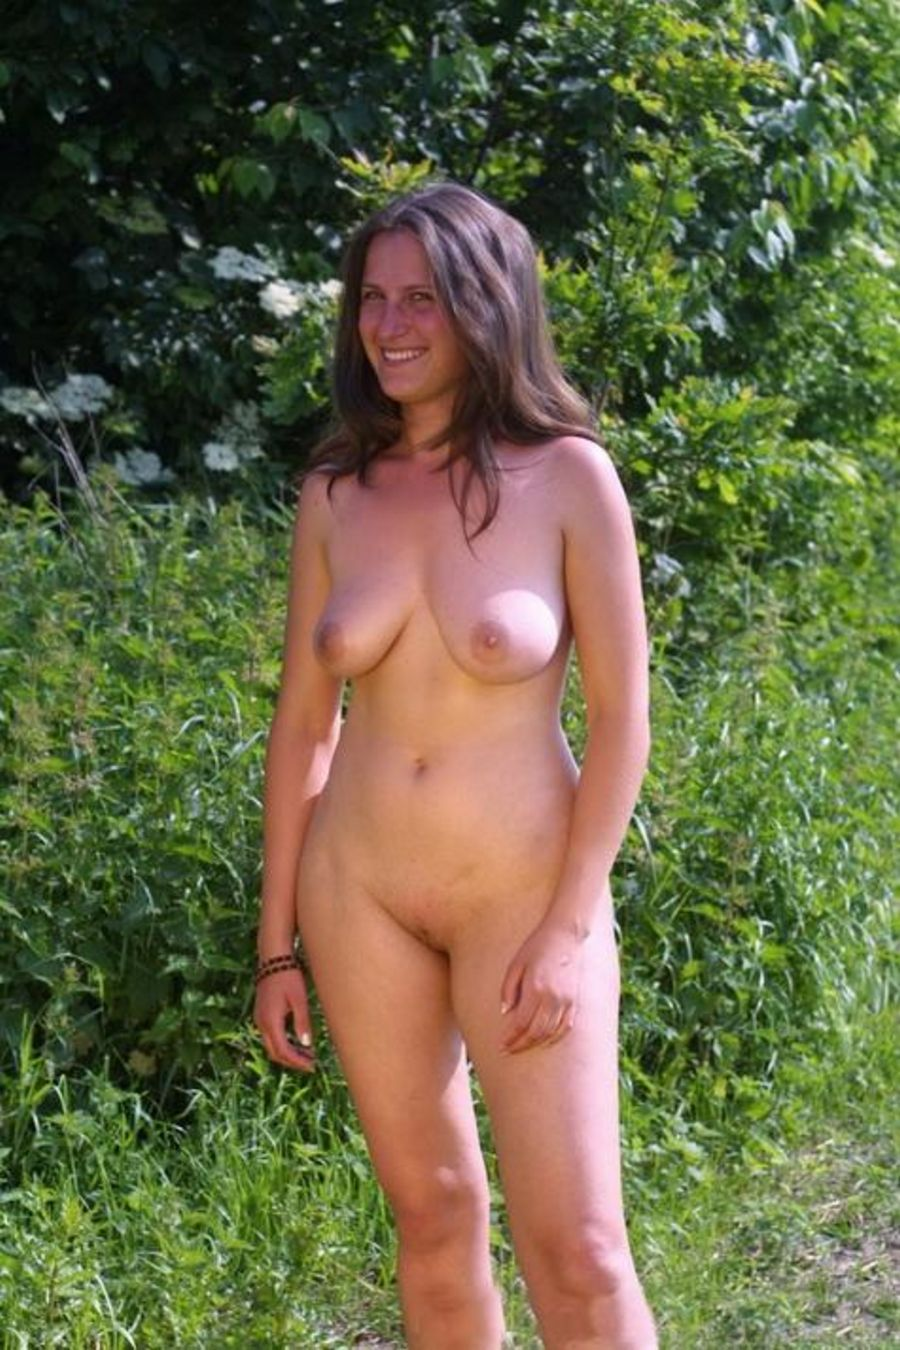 naked-wife-at-a-party-islamic-free-horny-sex-image